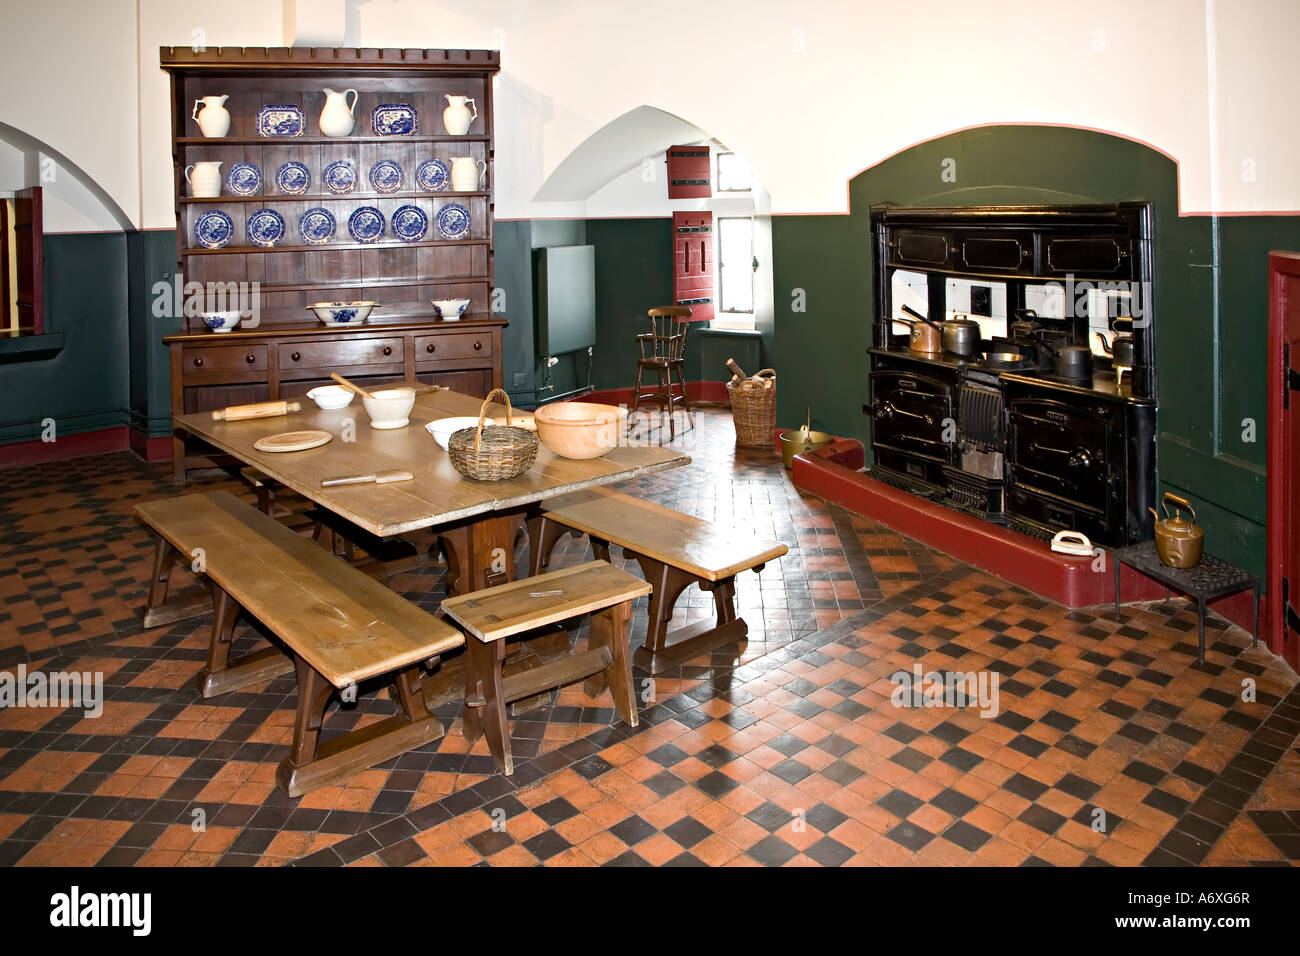 Kitchen With Range And Welsh Dresser Castell Coch Wales UK